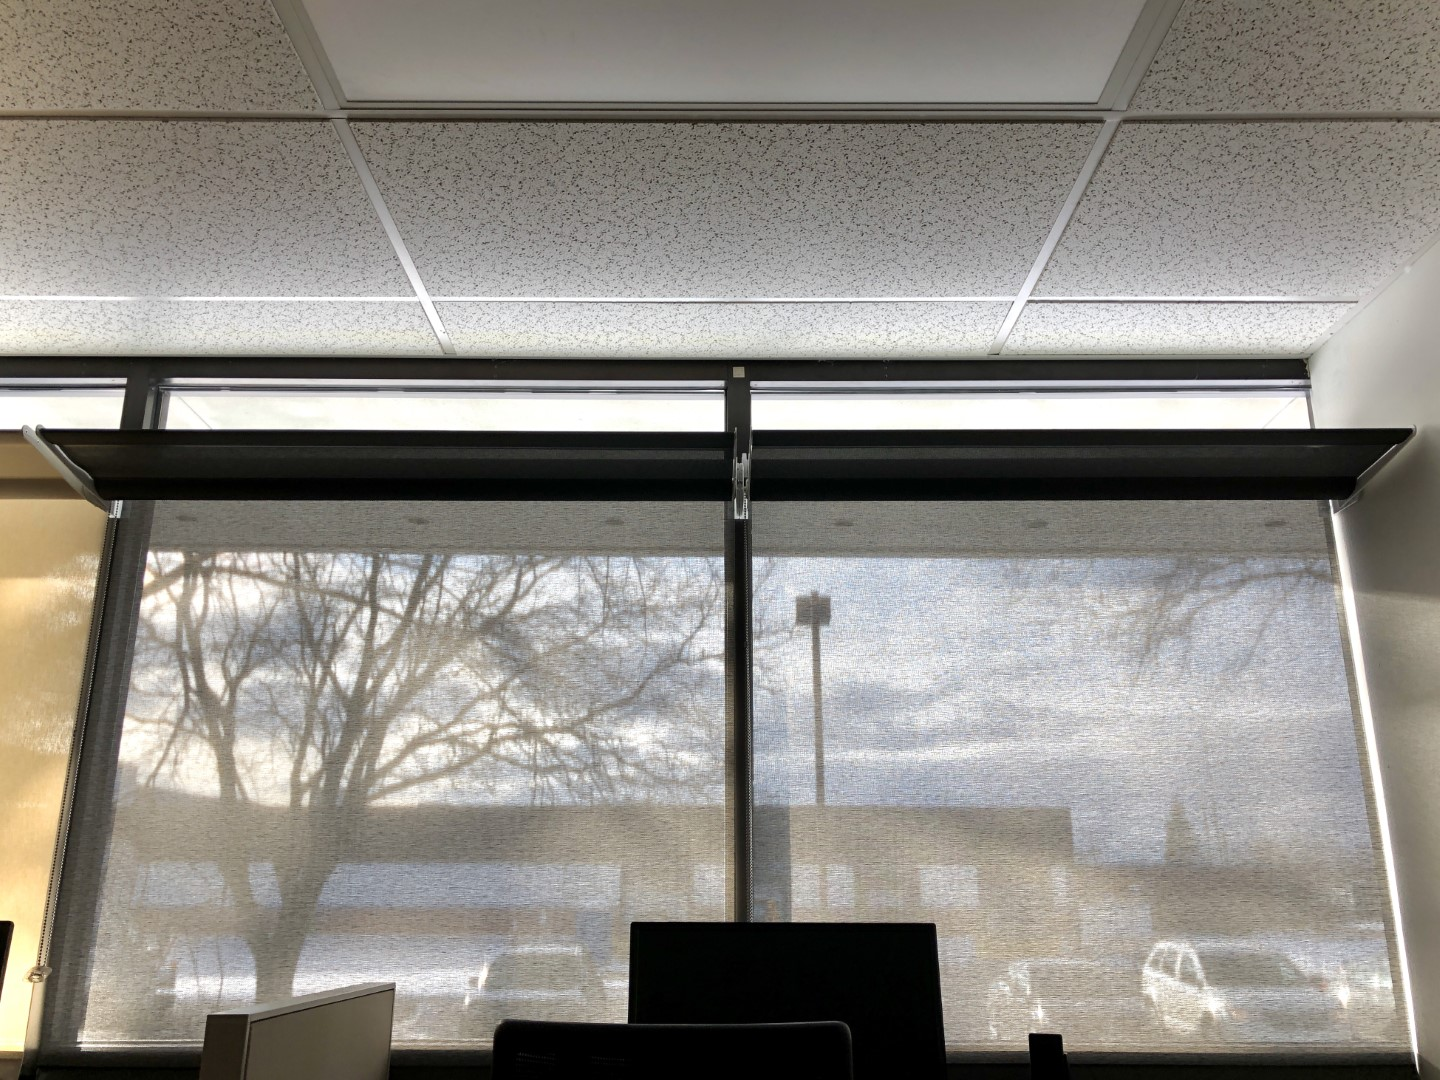 Office with translucent shades. Daylight is significantly reduced, but light shelves still reflect daylight across the ceiling.